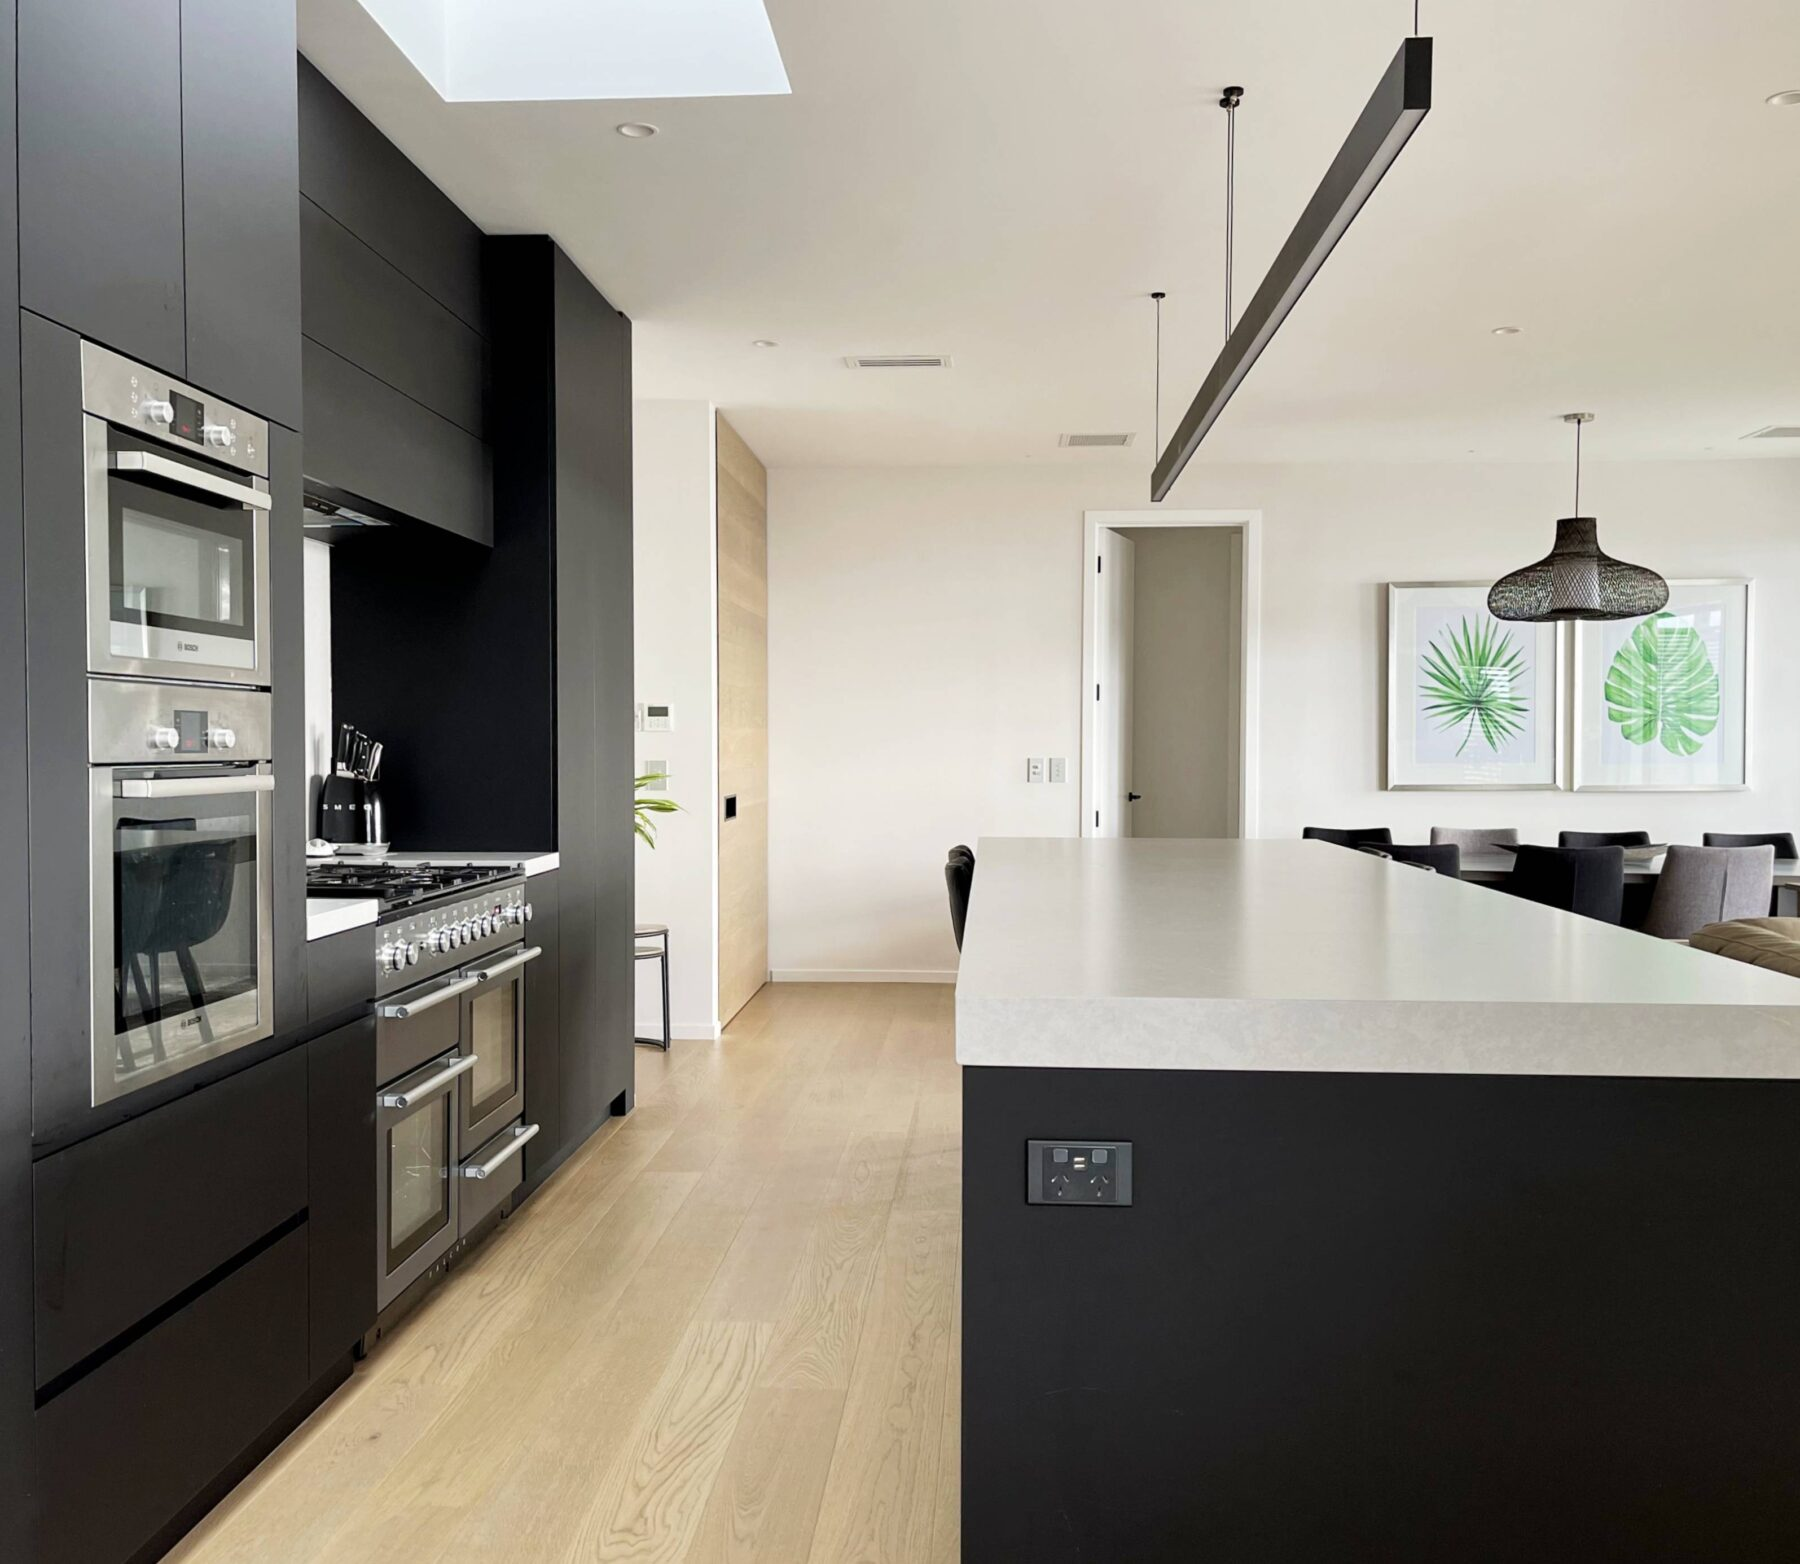 Modern contemporary kitchen with black cabinets and white stone benchtops and light wooden flooring, with black pendant lighting